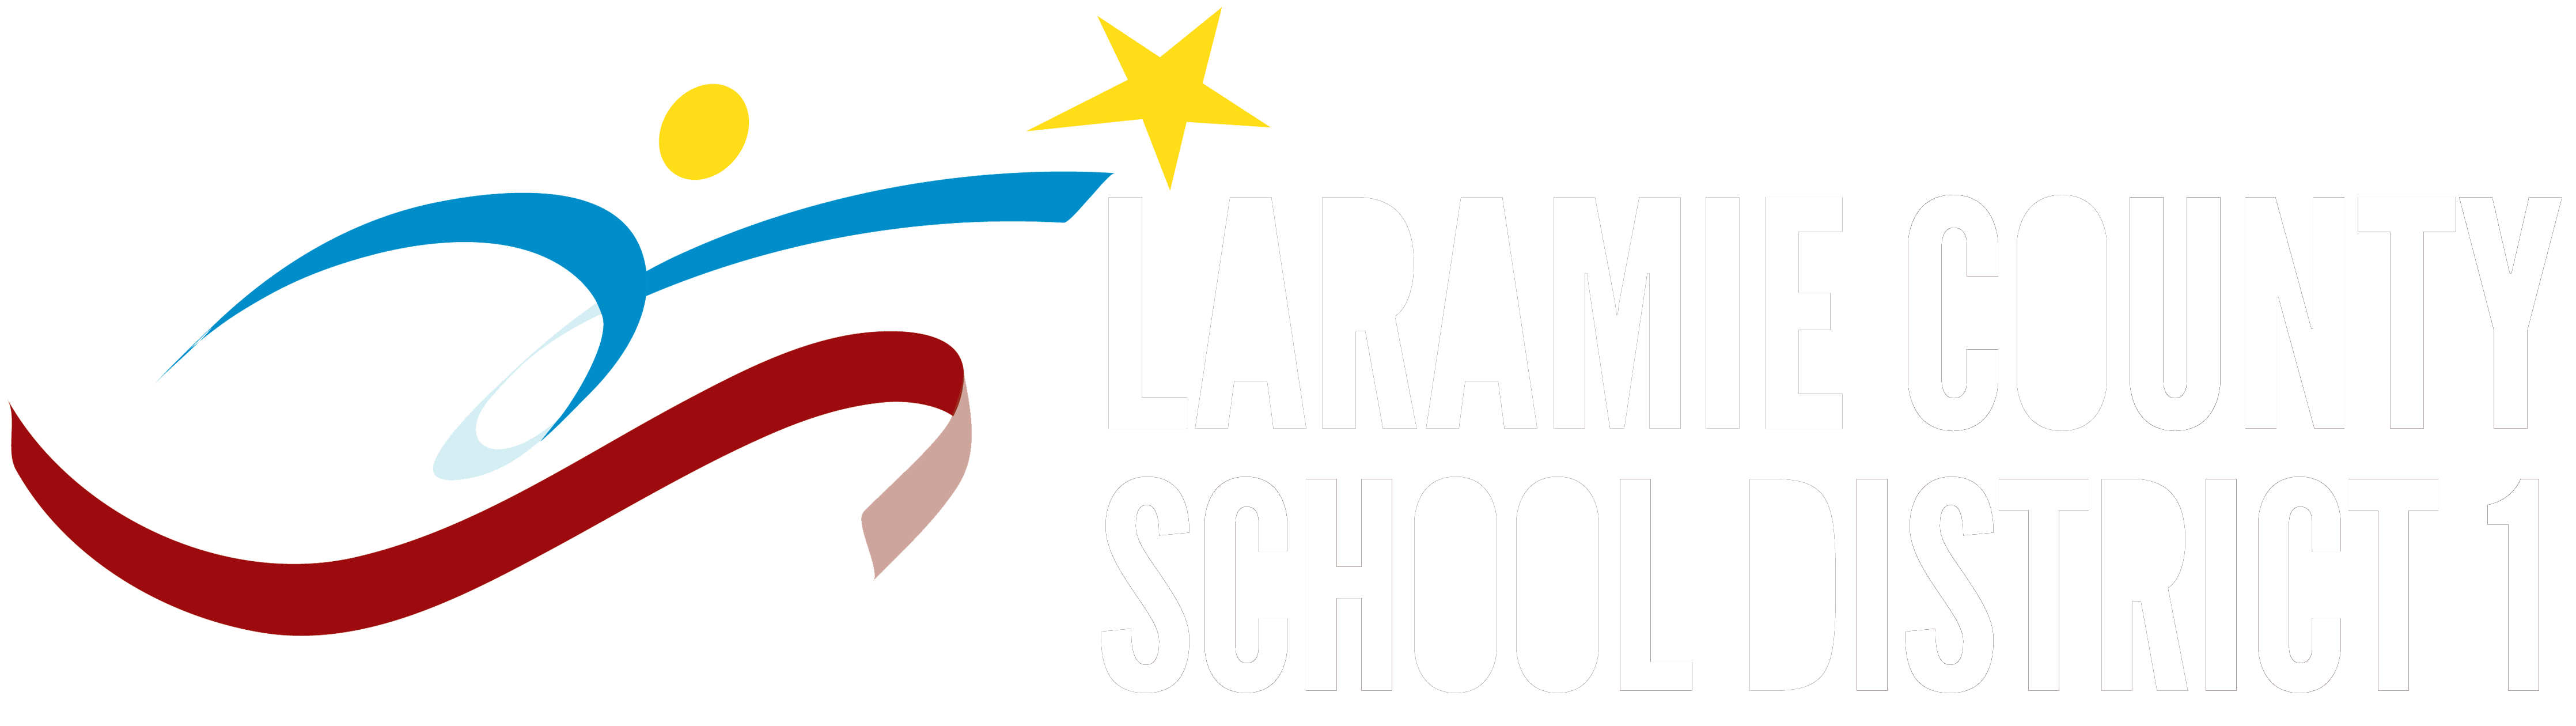 Laramie County School District 1